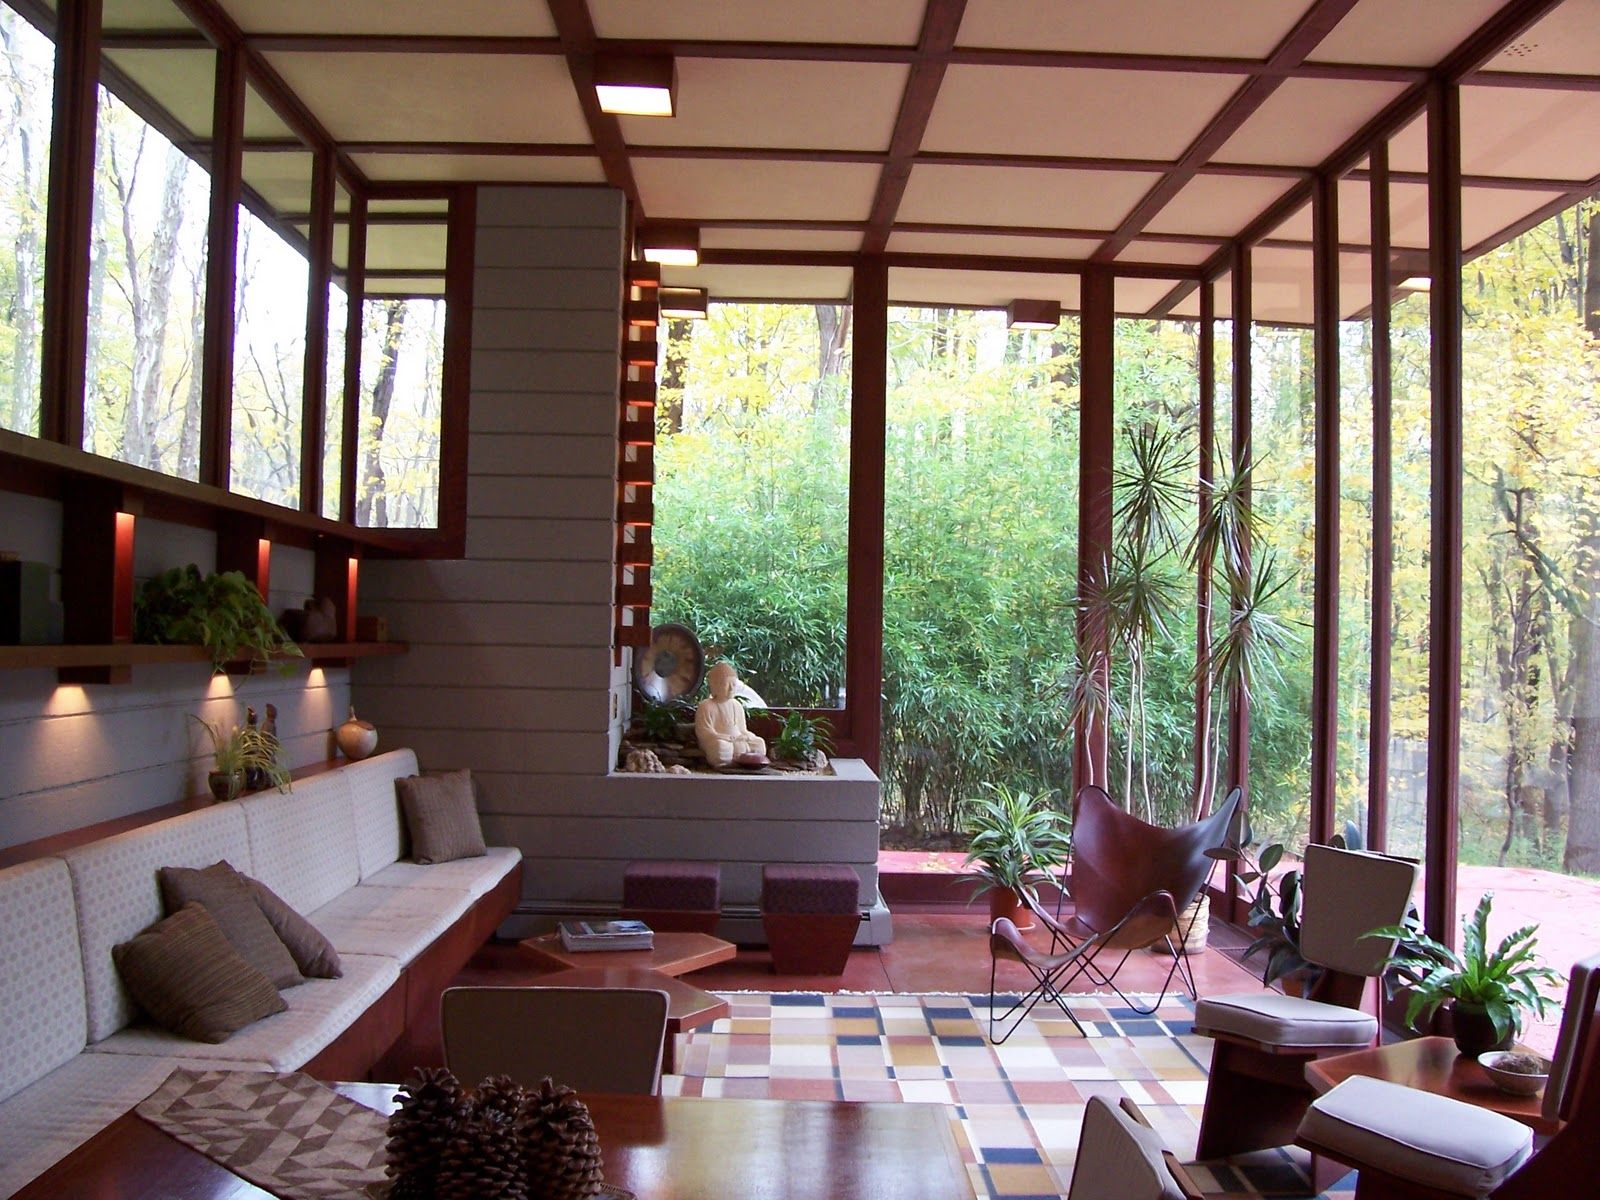 Louis Penfield House 1955 Willoughby Hills Cleveland Ohio Usonian Style Frank Lloyd Wright Usonian Style Frank Lloyd Wright Architect